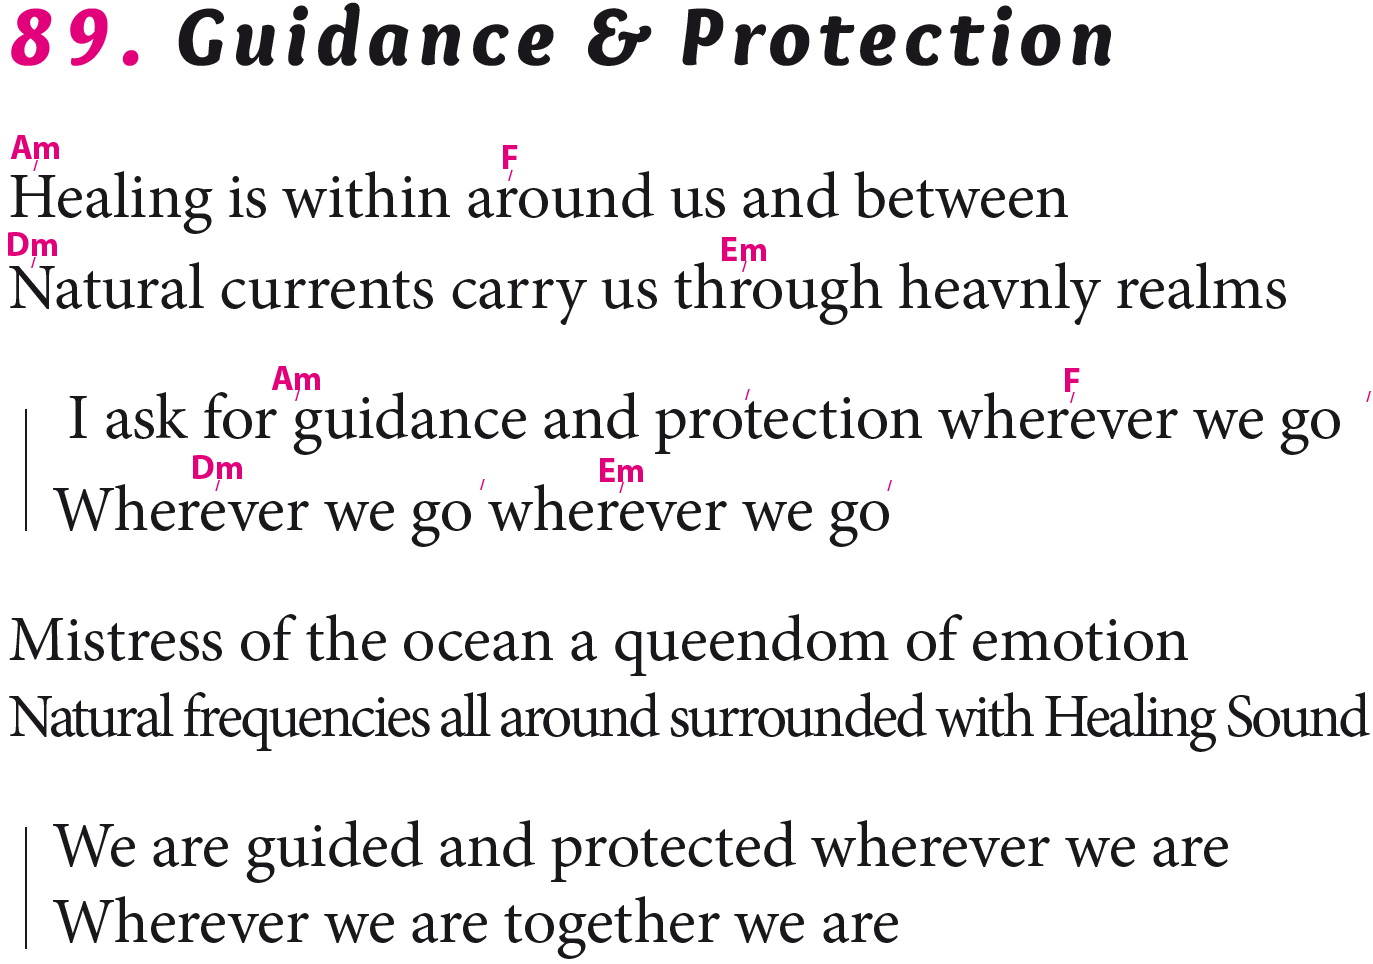 Guidance & Protection